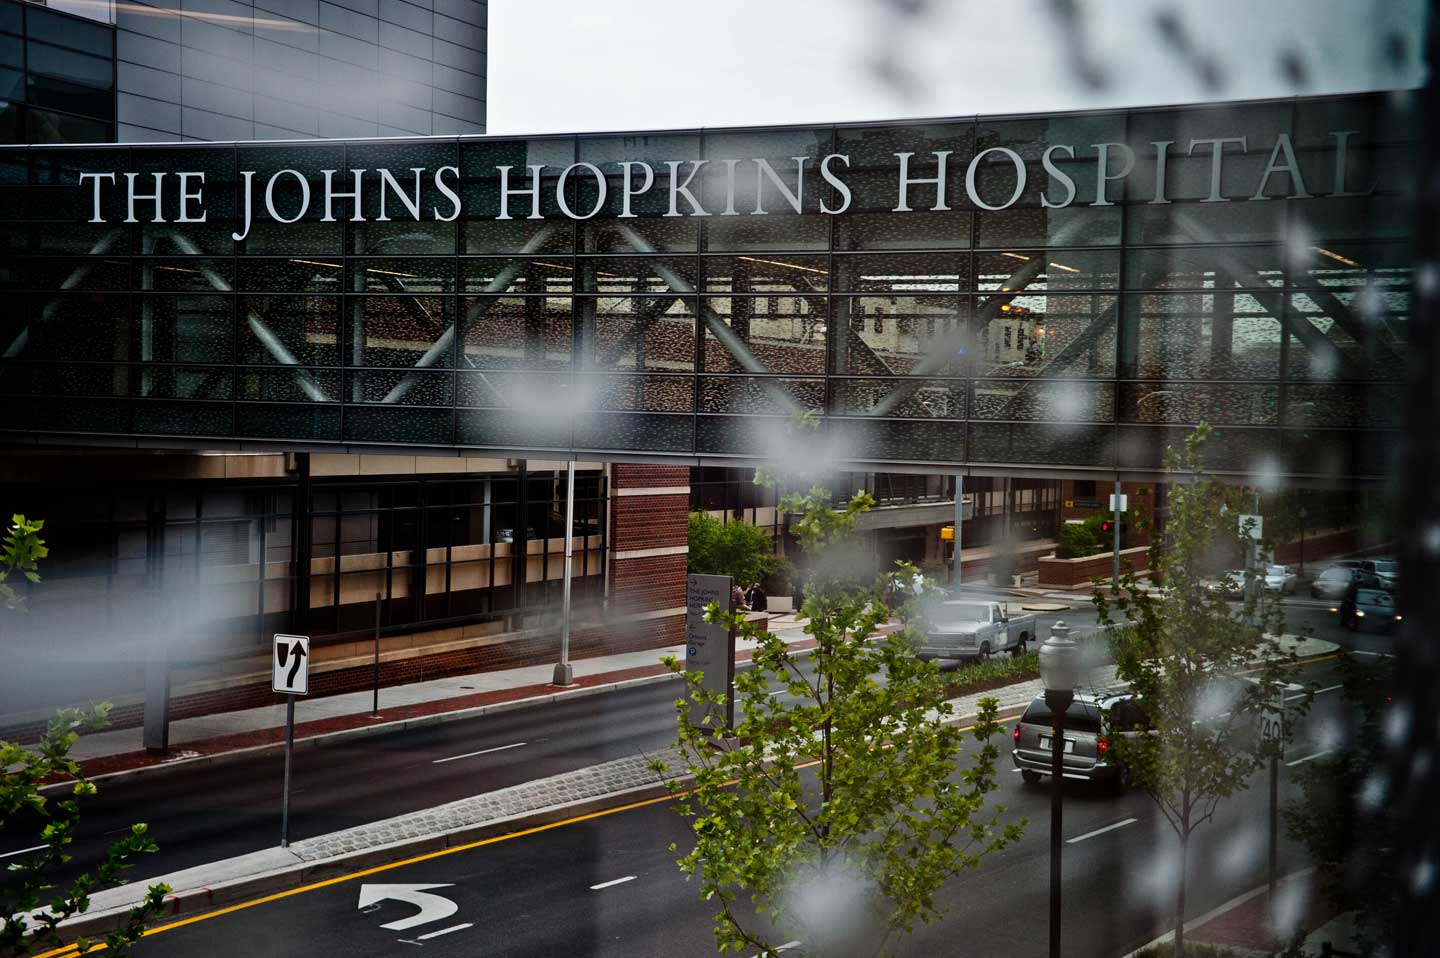 Across Orleans Street, a bridge leads to the future of patient- and family-centered care at Hopkins.